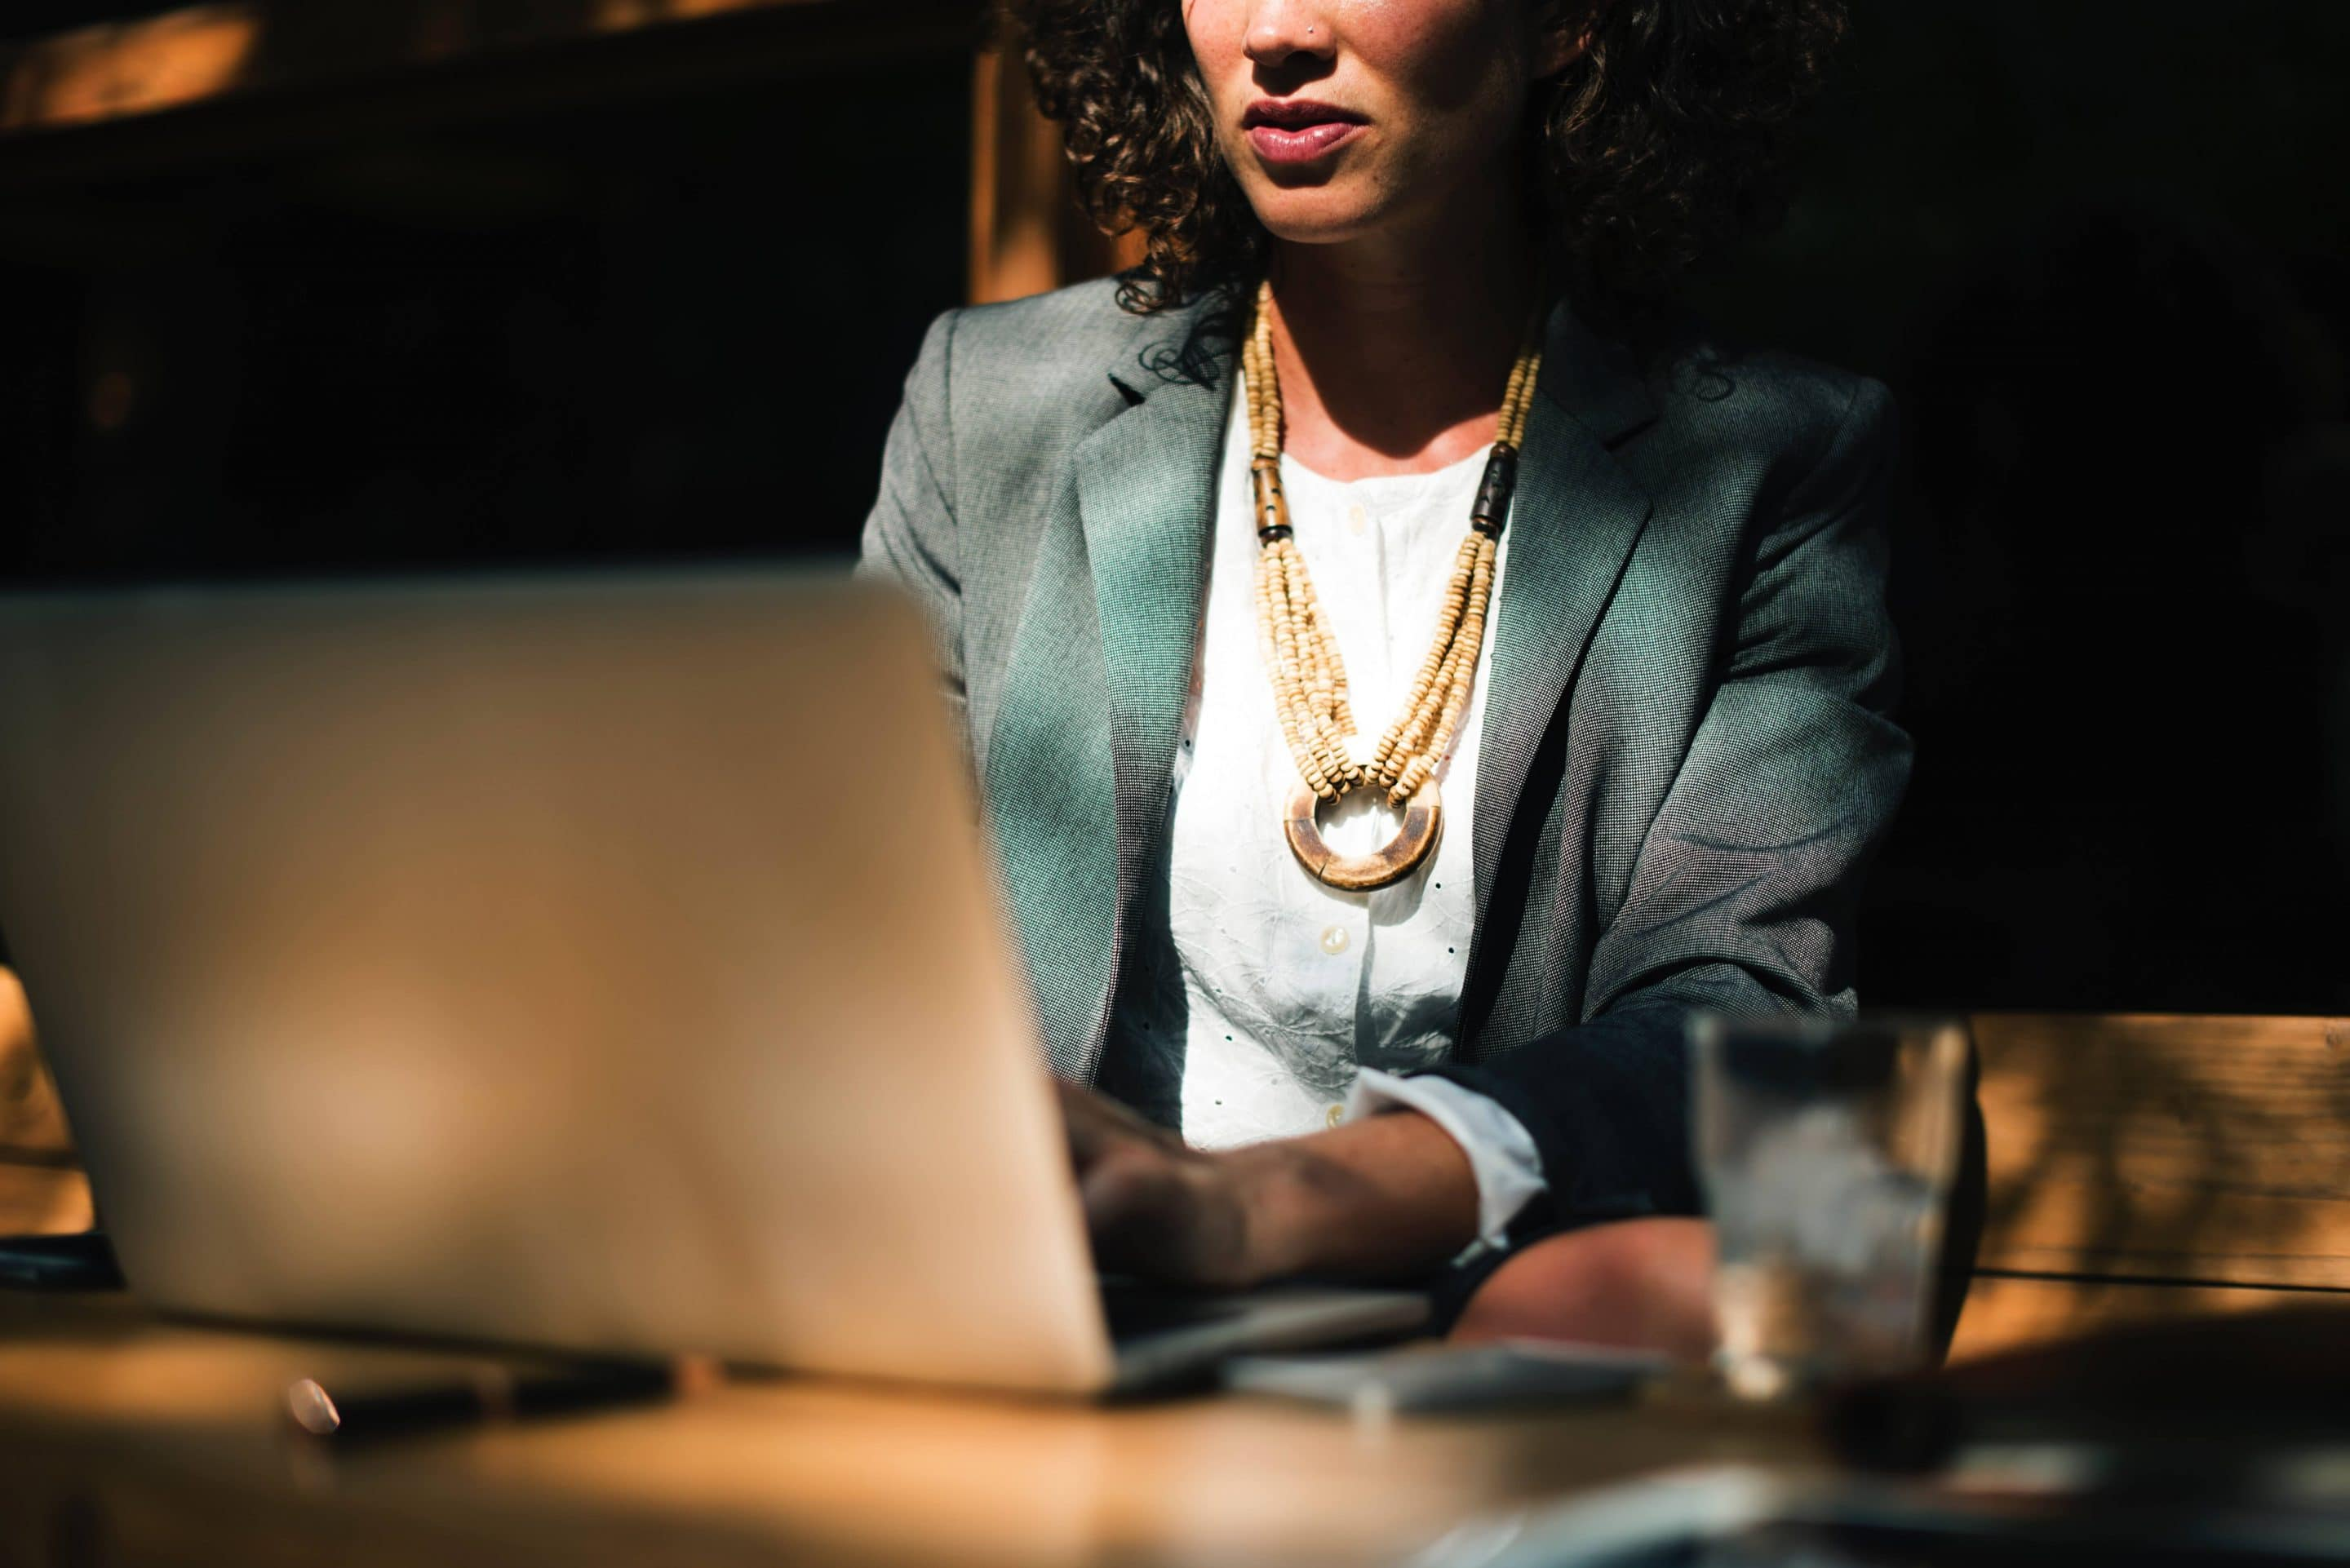 The Top 3 Techniques To Land an Interview With a Hiring Manager